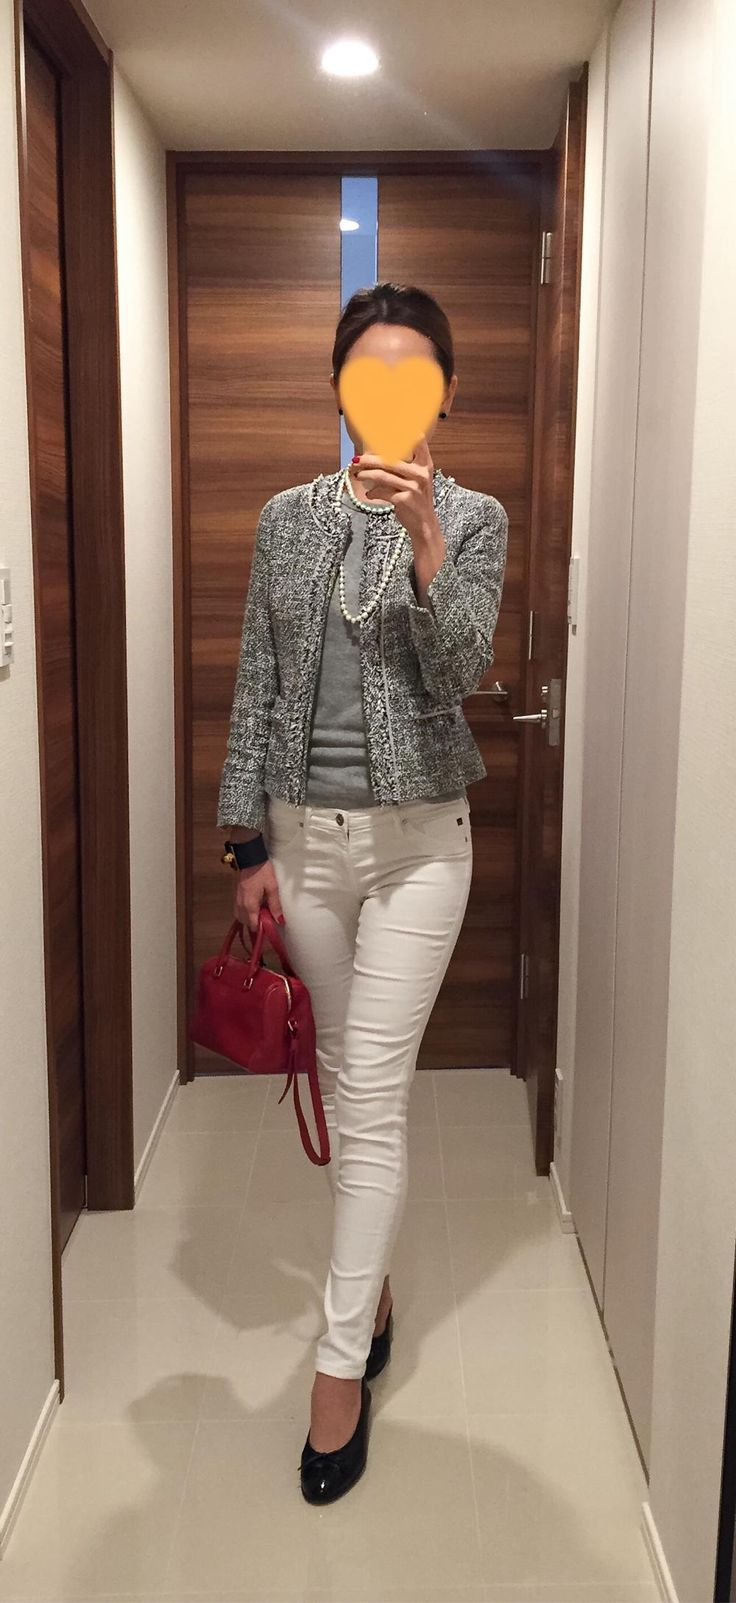 Jacket: NEWYORKER, Grey tee: Three dots, White skinnies: AG, Red bag: Saint Laurent: Flats: CHANEL